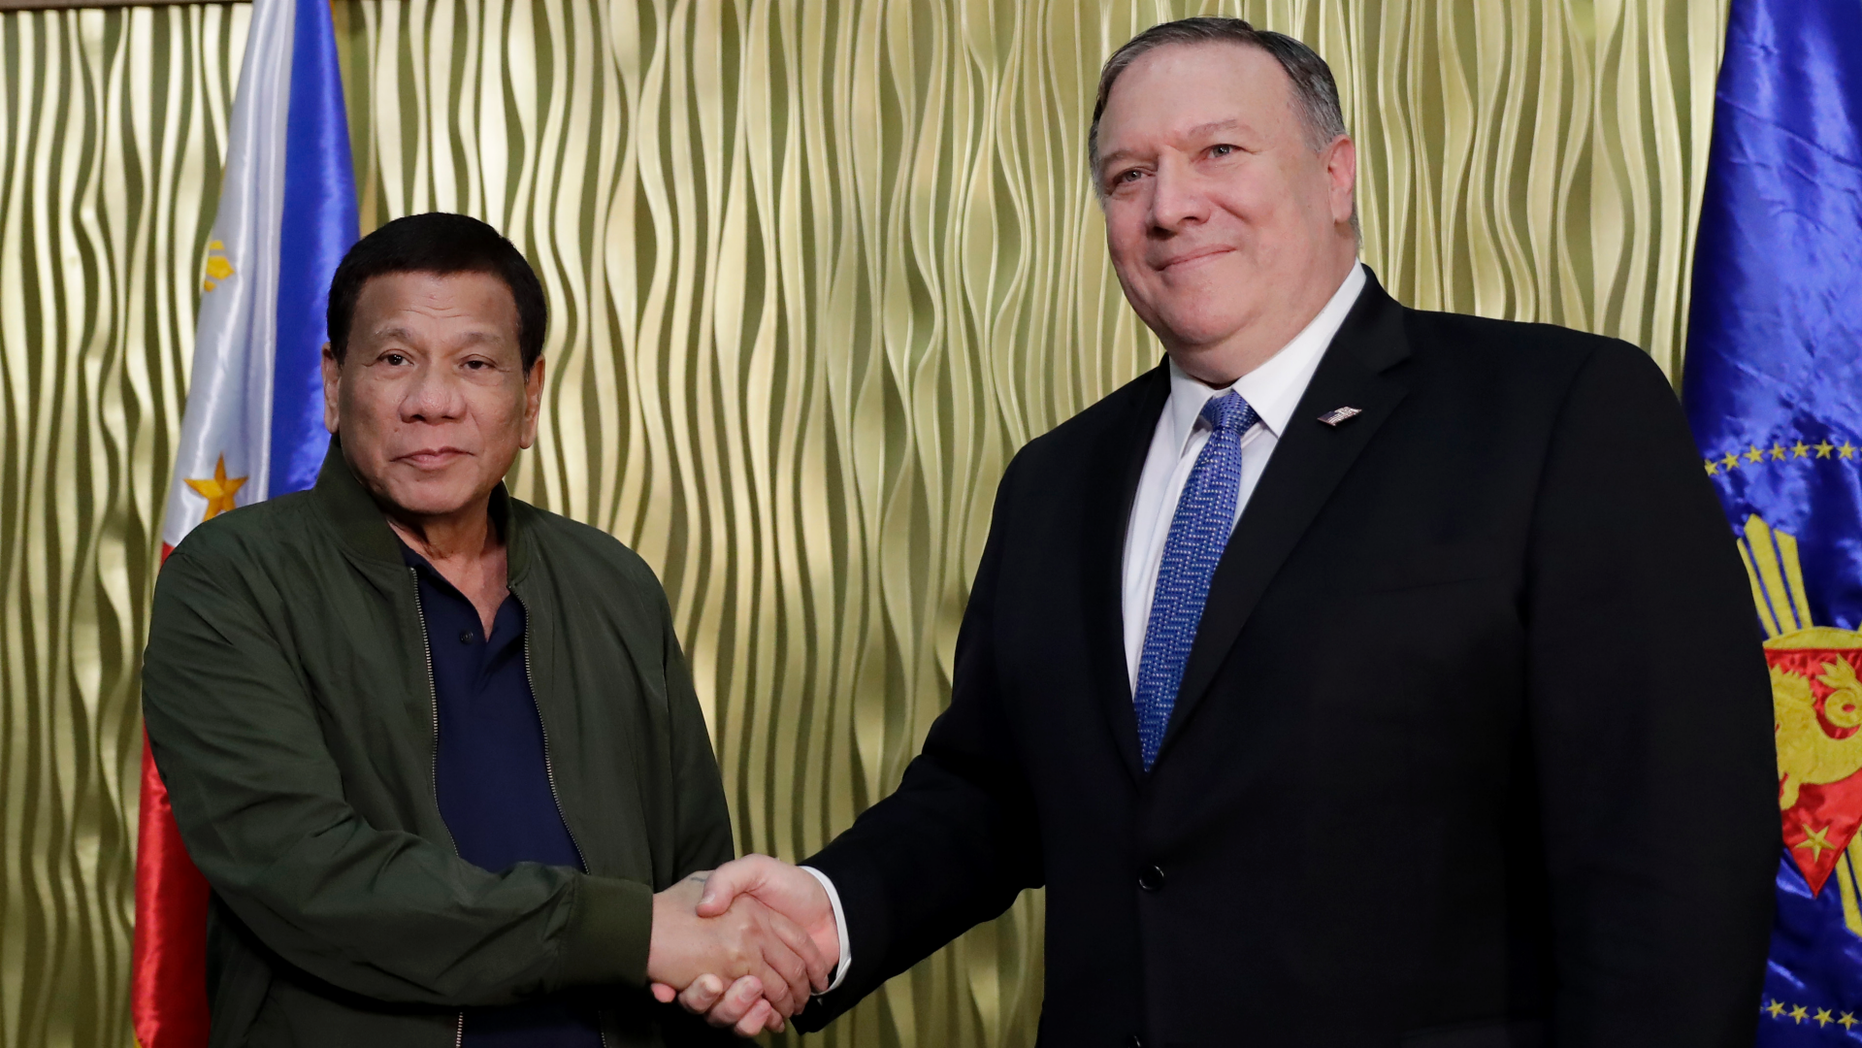 Pompeo says world should have eyes wide open about Chinese tech risks